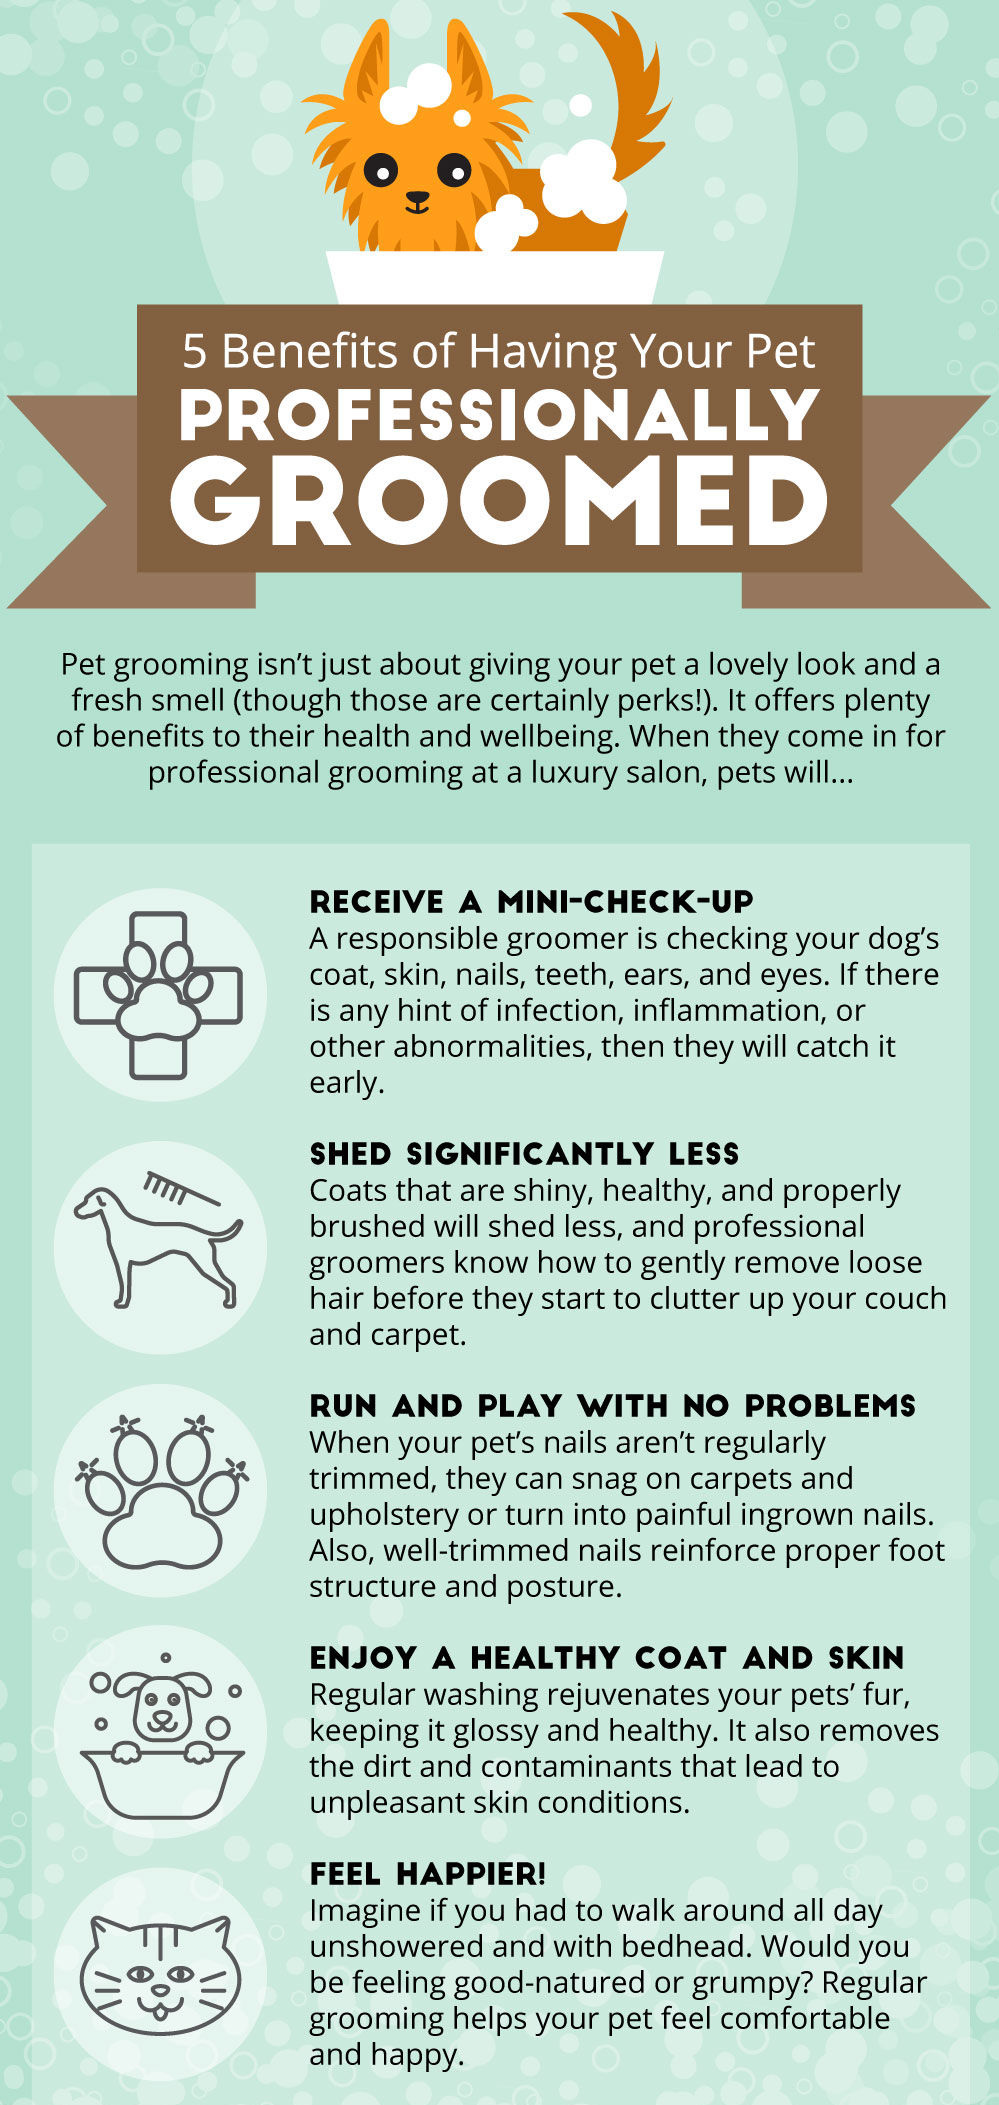 The benefits of using a professional dog groomer